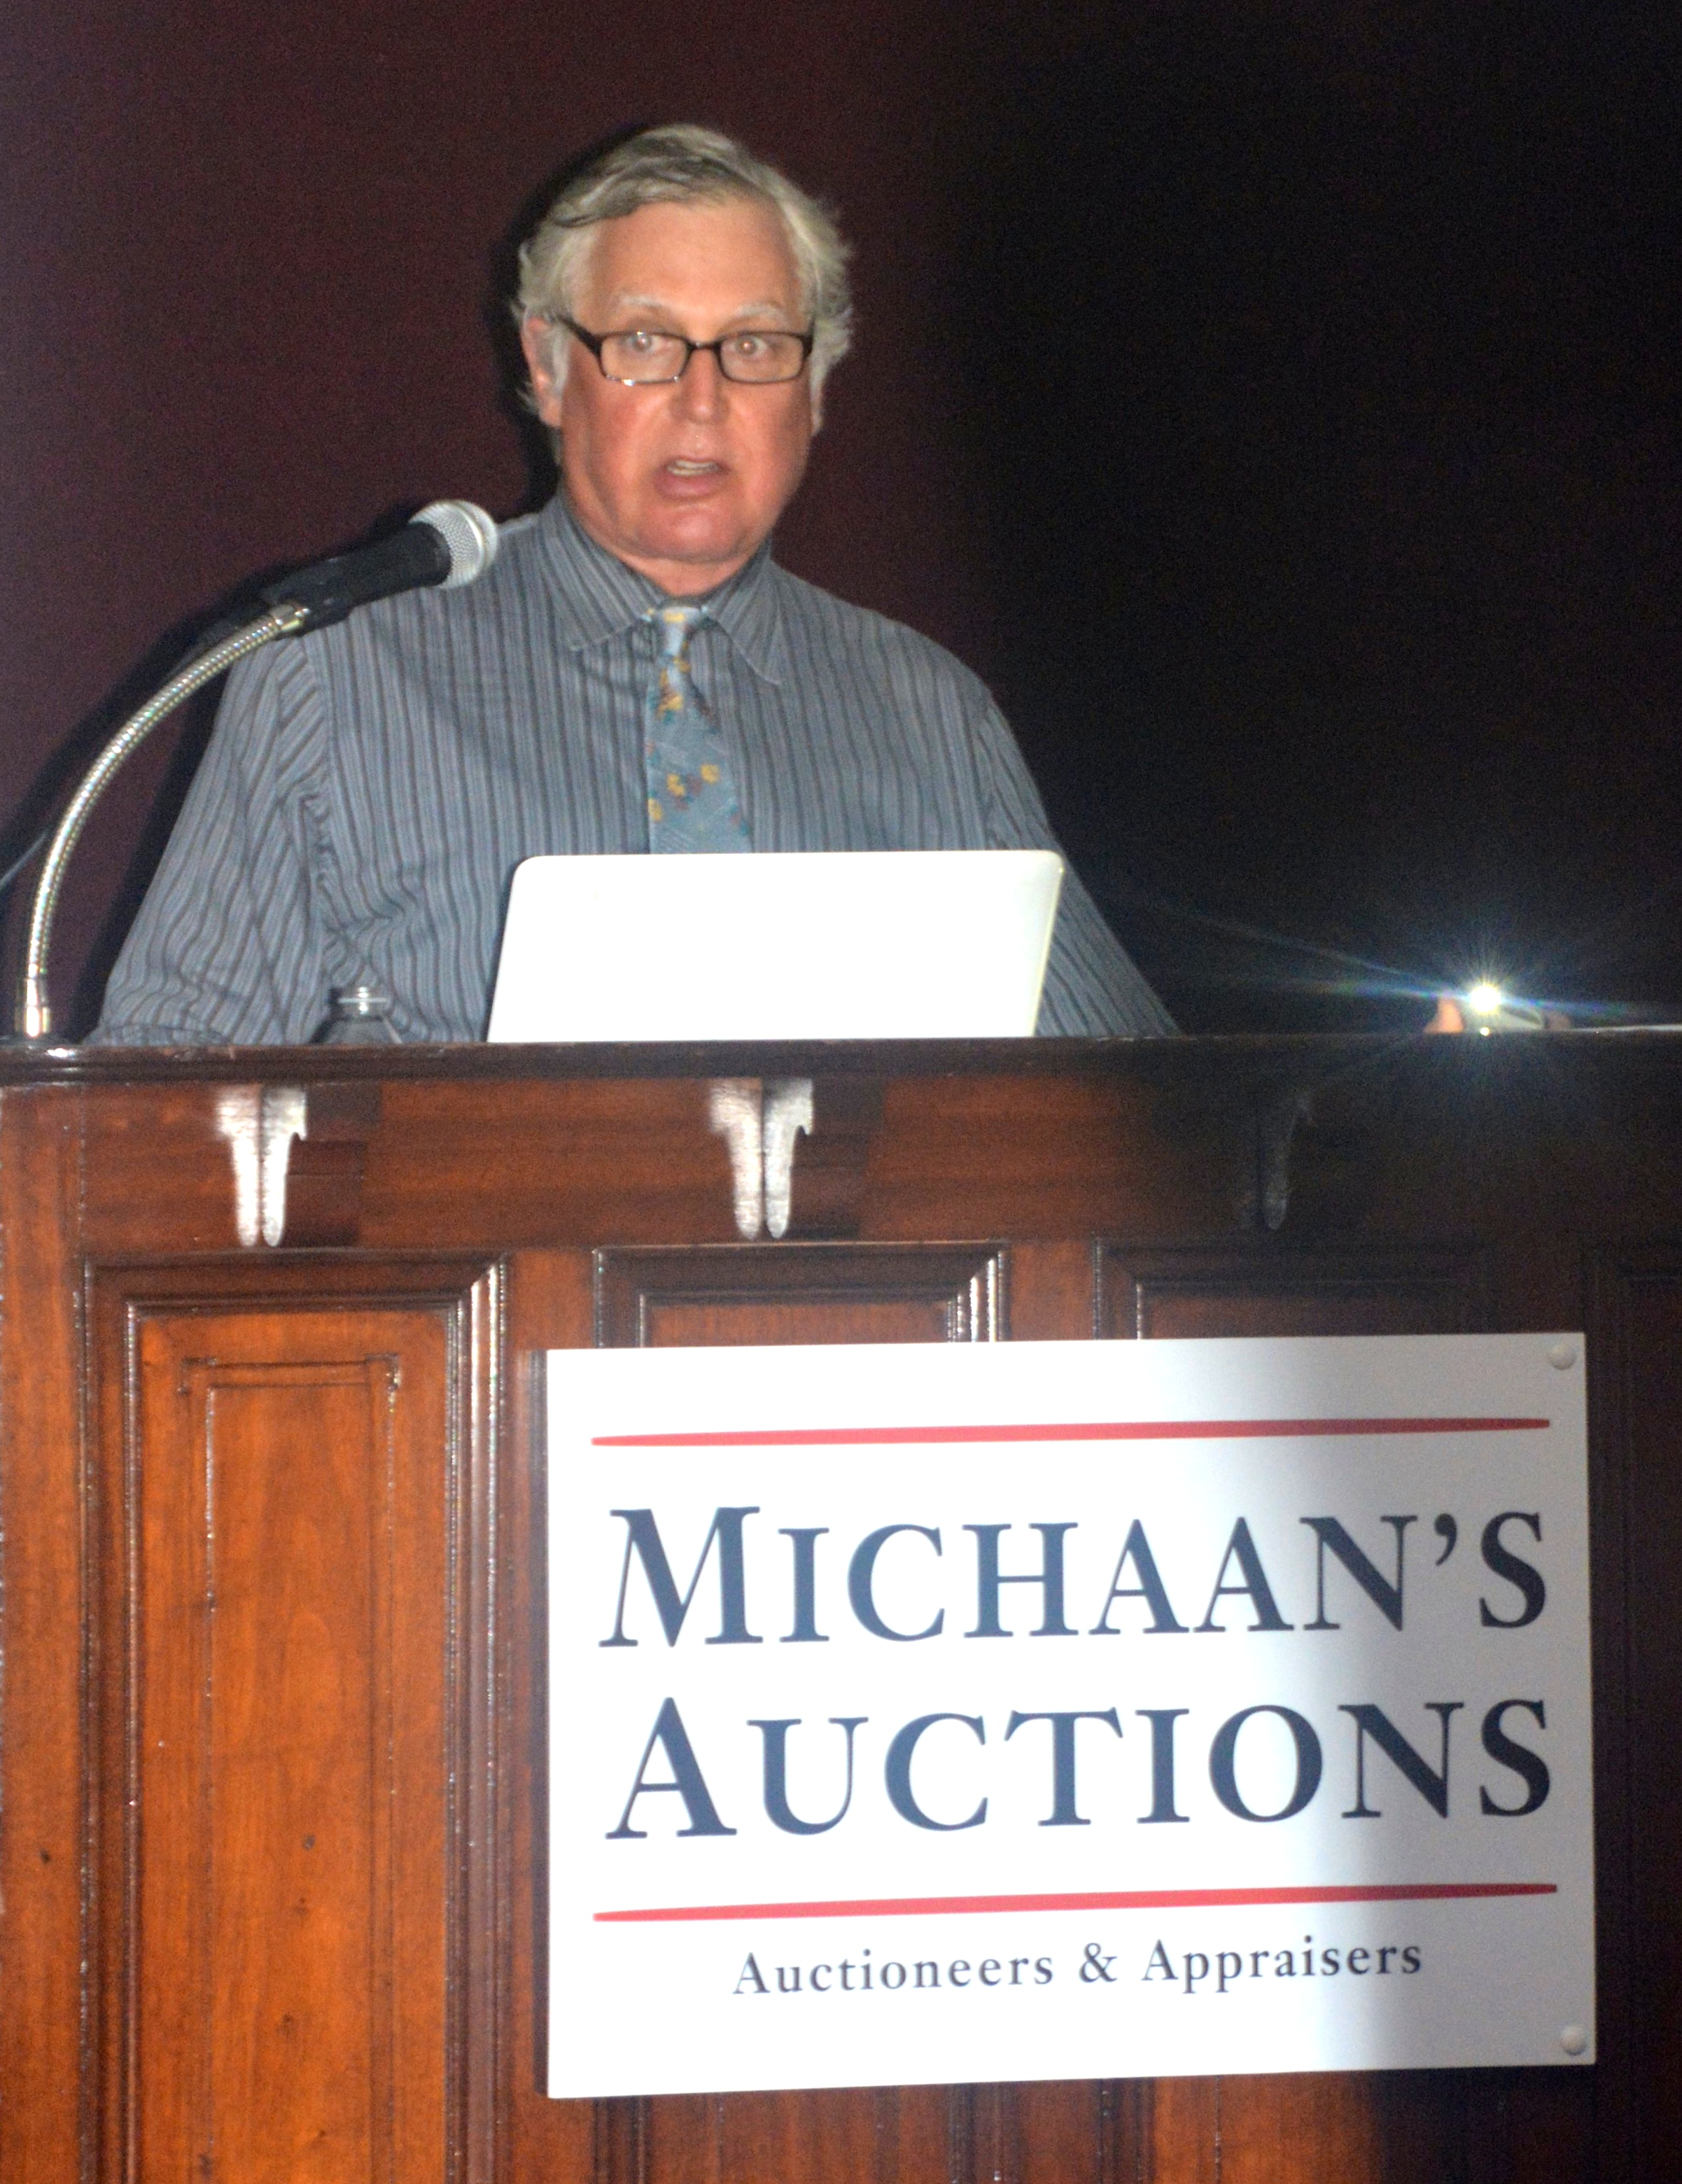 Allen Michaan of Michaan's auctions